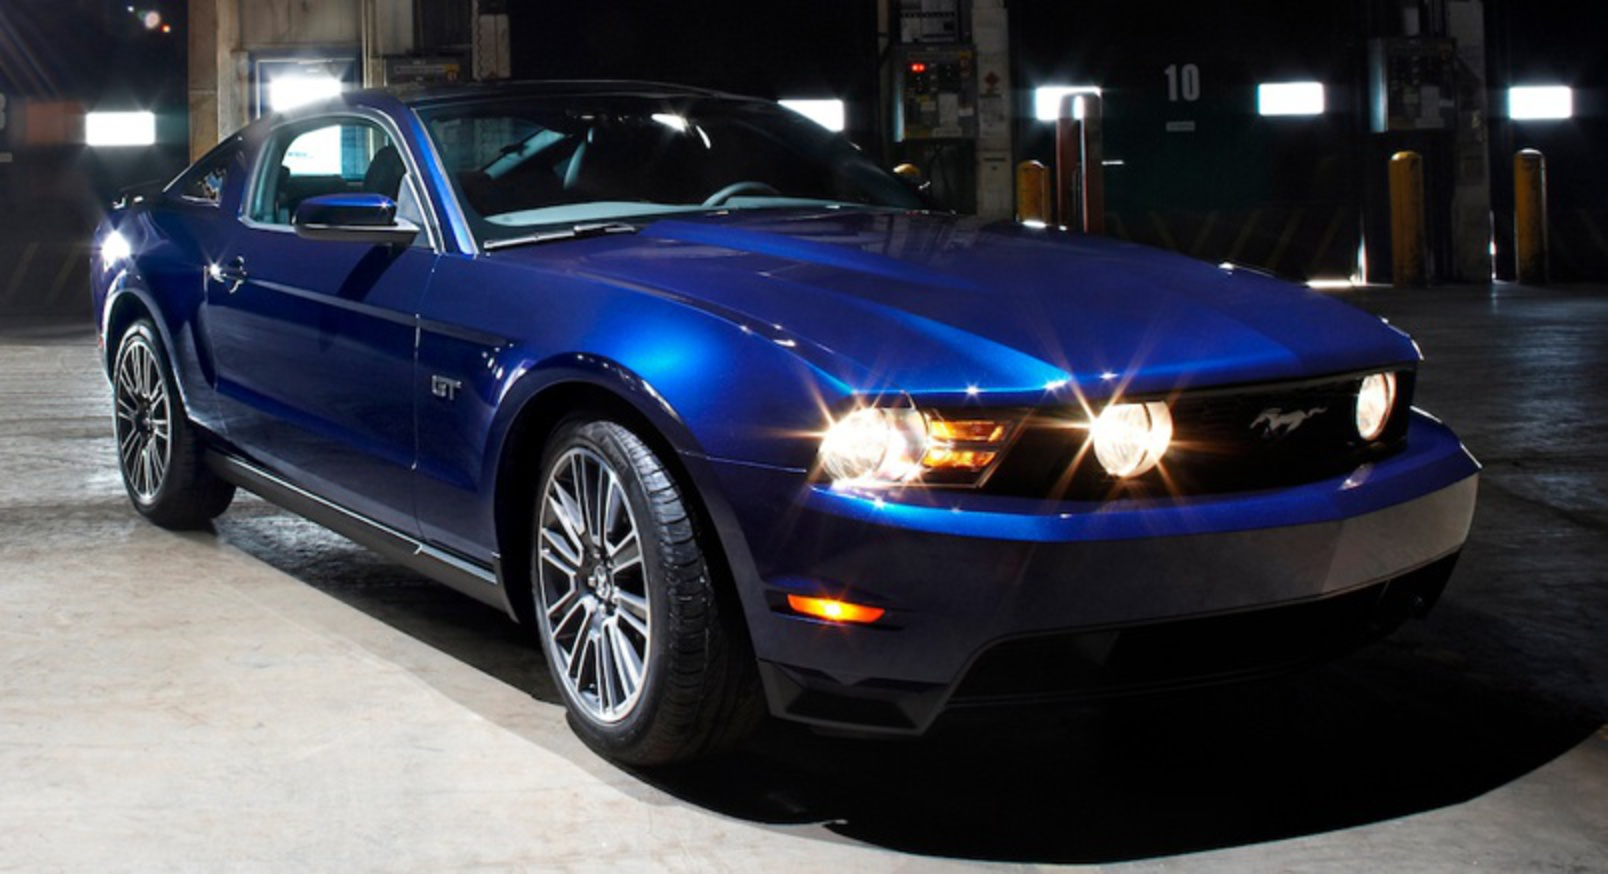 Ford Mustang GT. View Download Wallpaper. 804x437. Comments